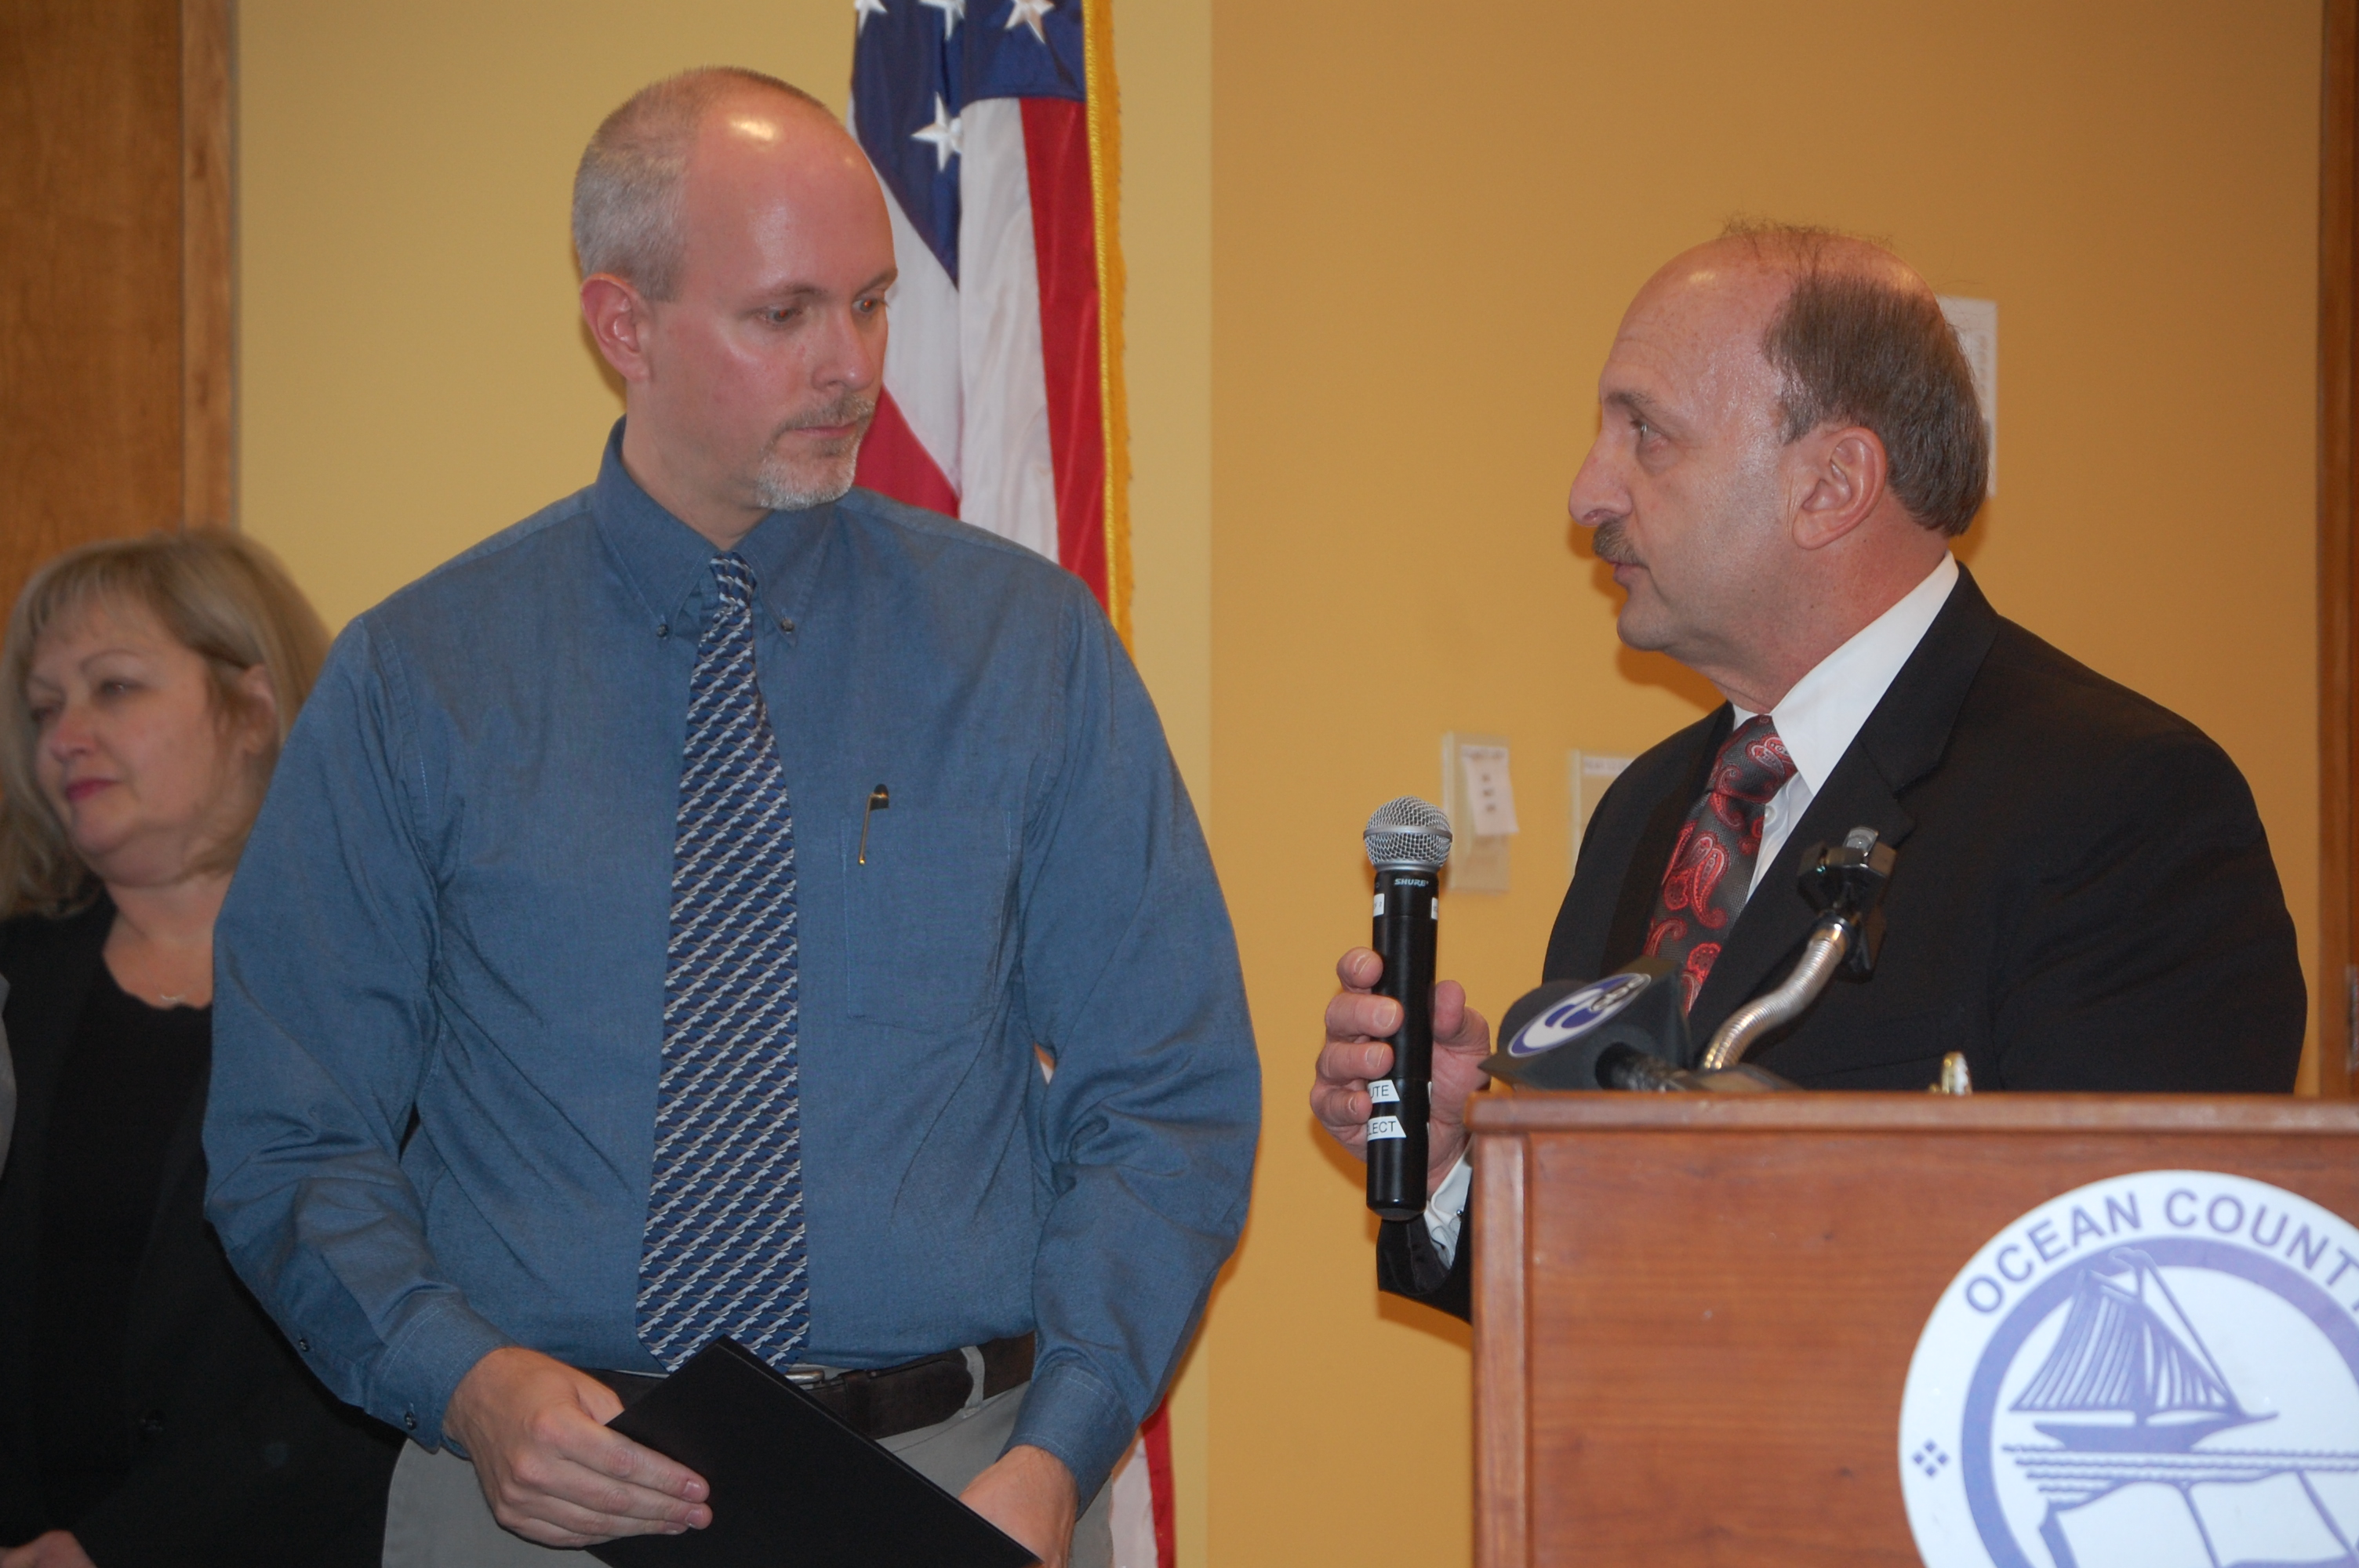 Ocean County Prosecutor Joseph D. Coronato introduces Dr. Kenneth Lavelle at a ceremony, Jan. 19, 2016. (Photo: Daniel Nee)